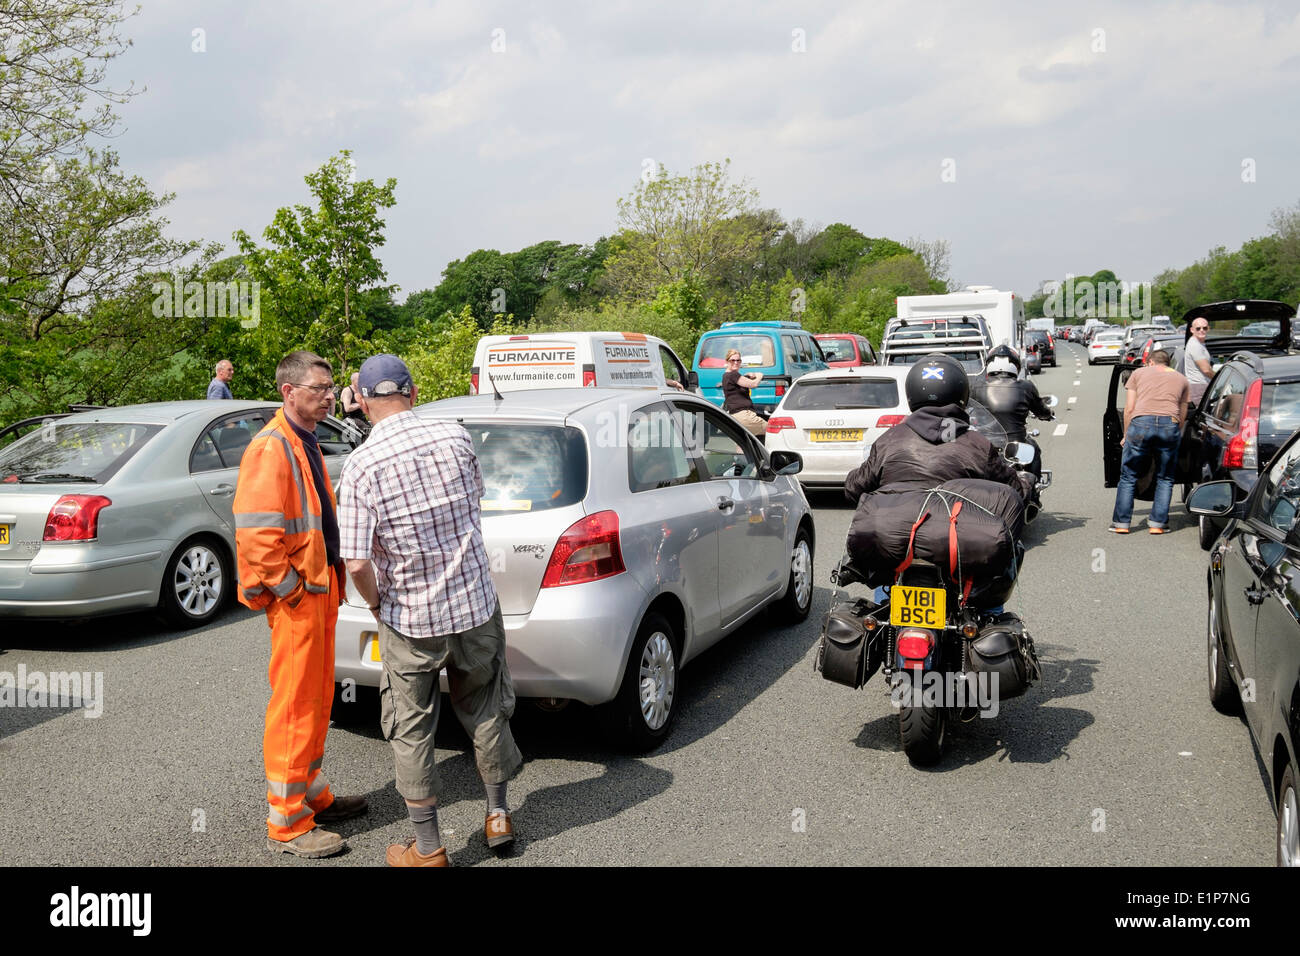 People standing on carriageway outside stationary vehicles in a traffic jam on M6 motorway due to accident causing long delay. Lancashire England UK - Stock Image